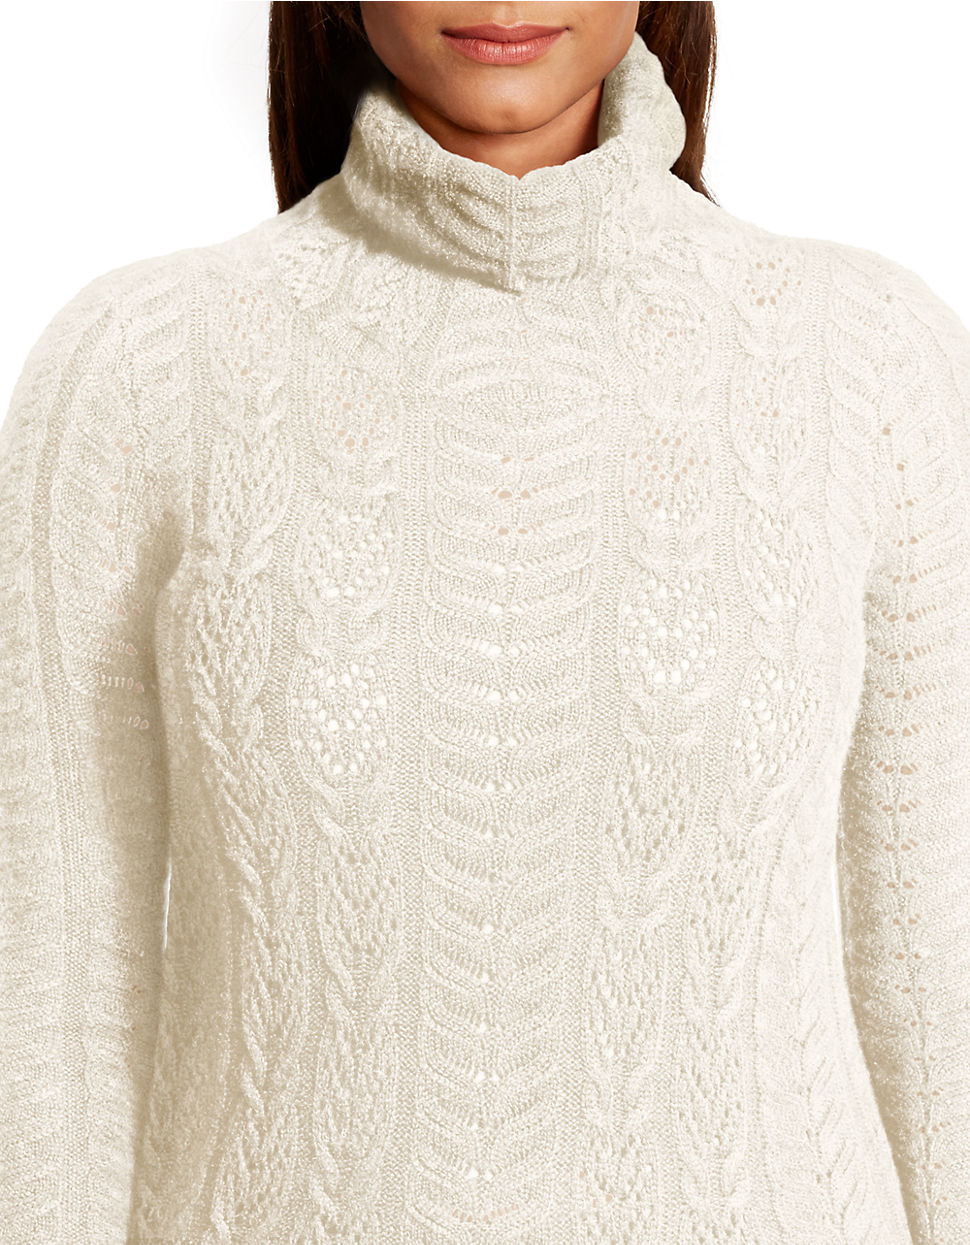 Lauren by ralph lauren Plus Wool-cashmere Turtleneck Sweater in ...